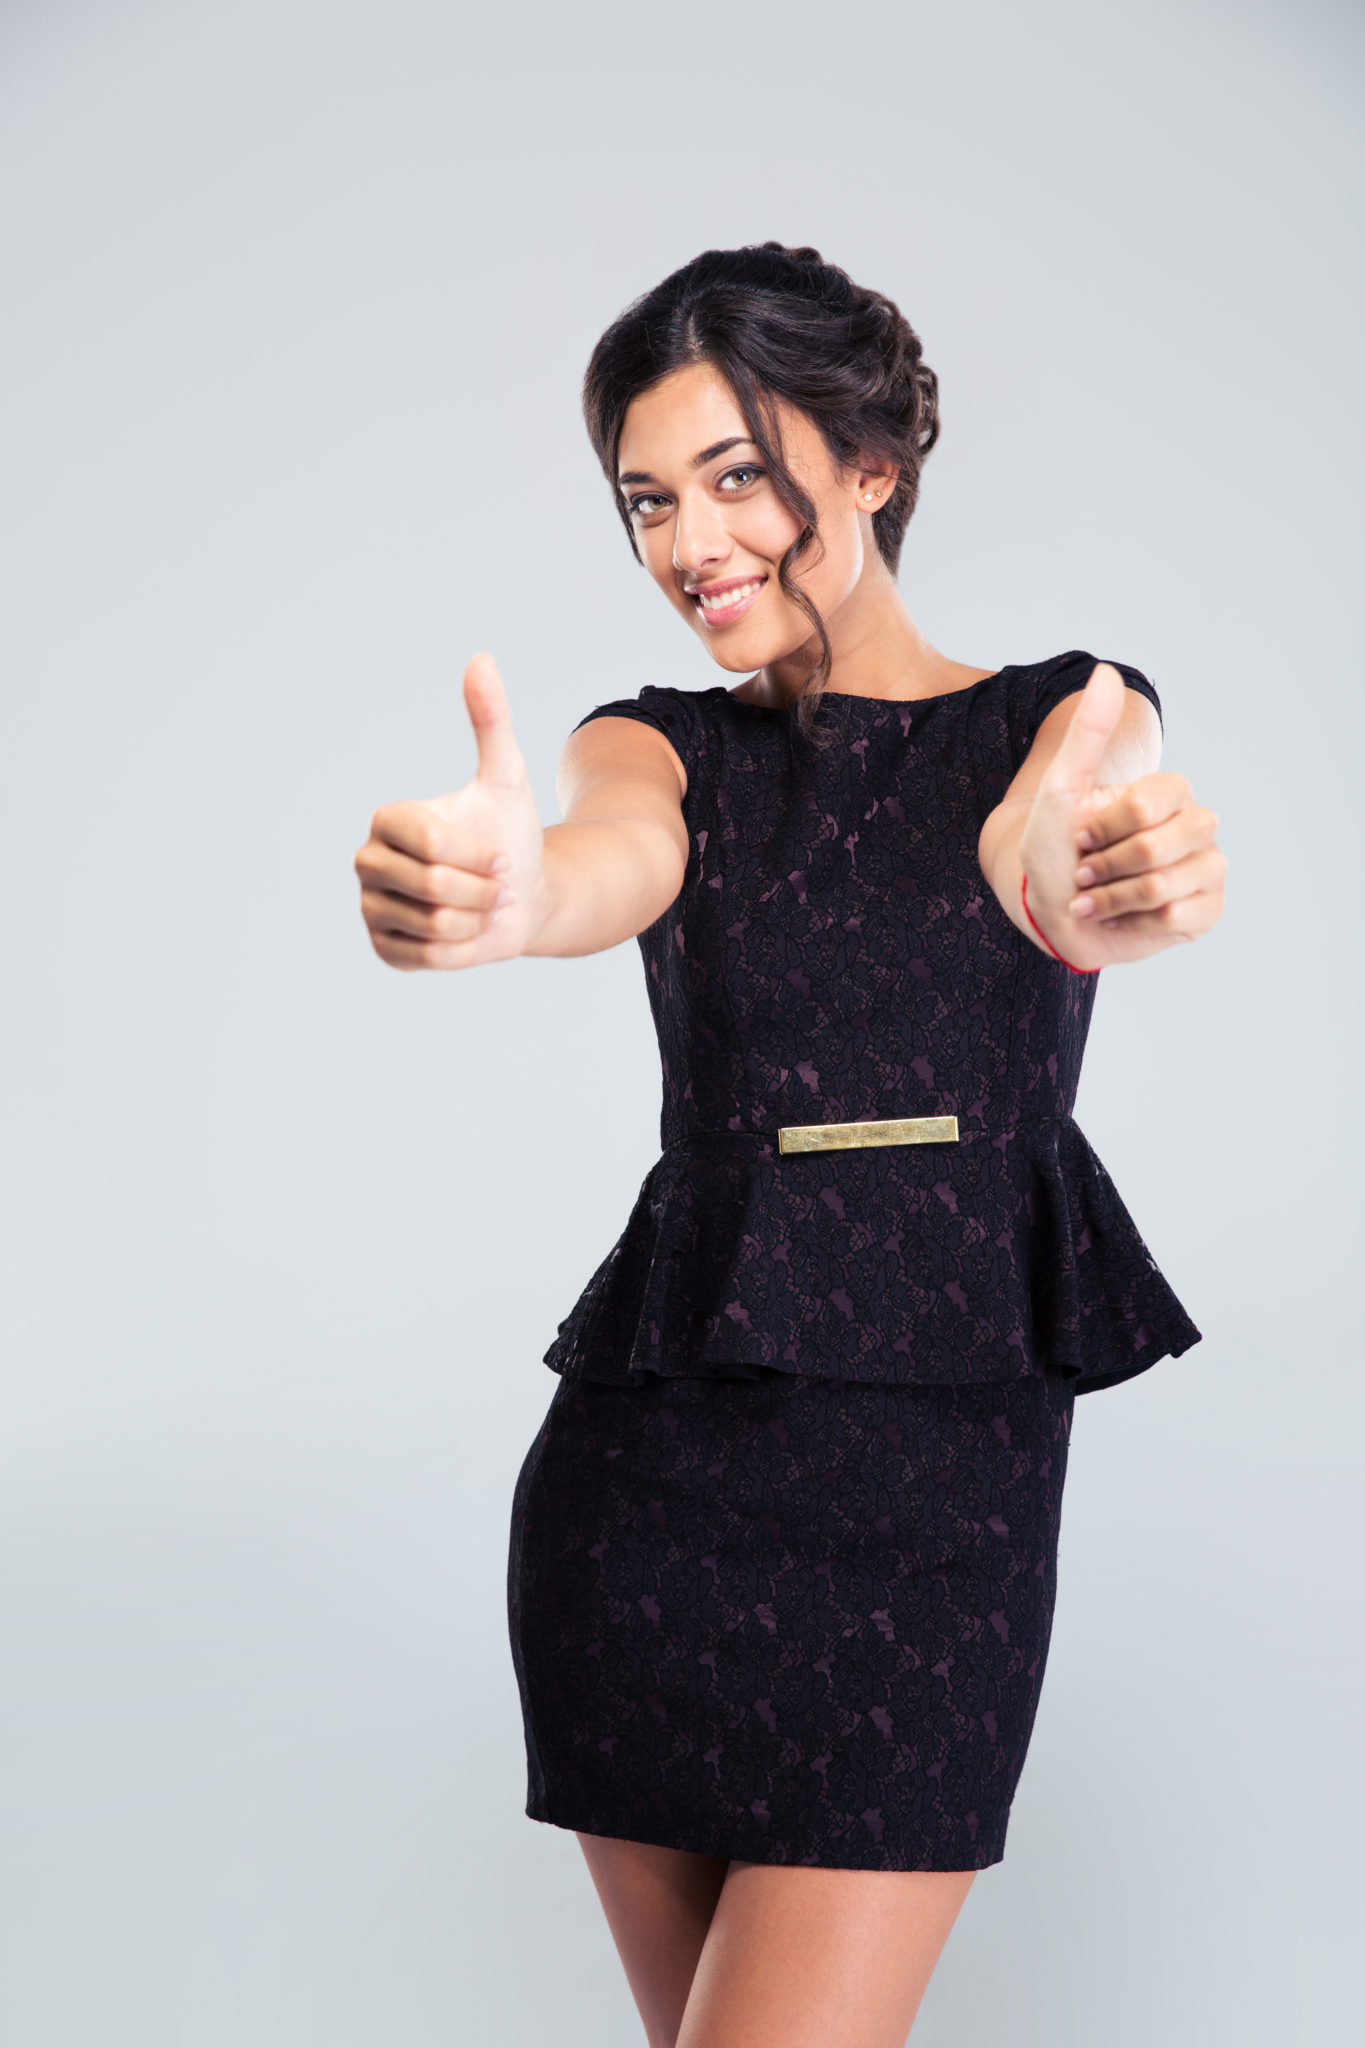 Woman In Fashion Dress Showing Thumbs Up